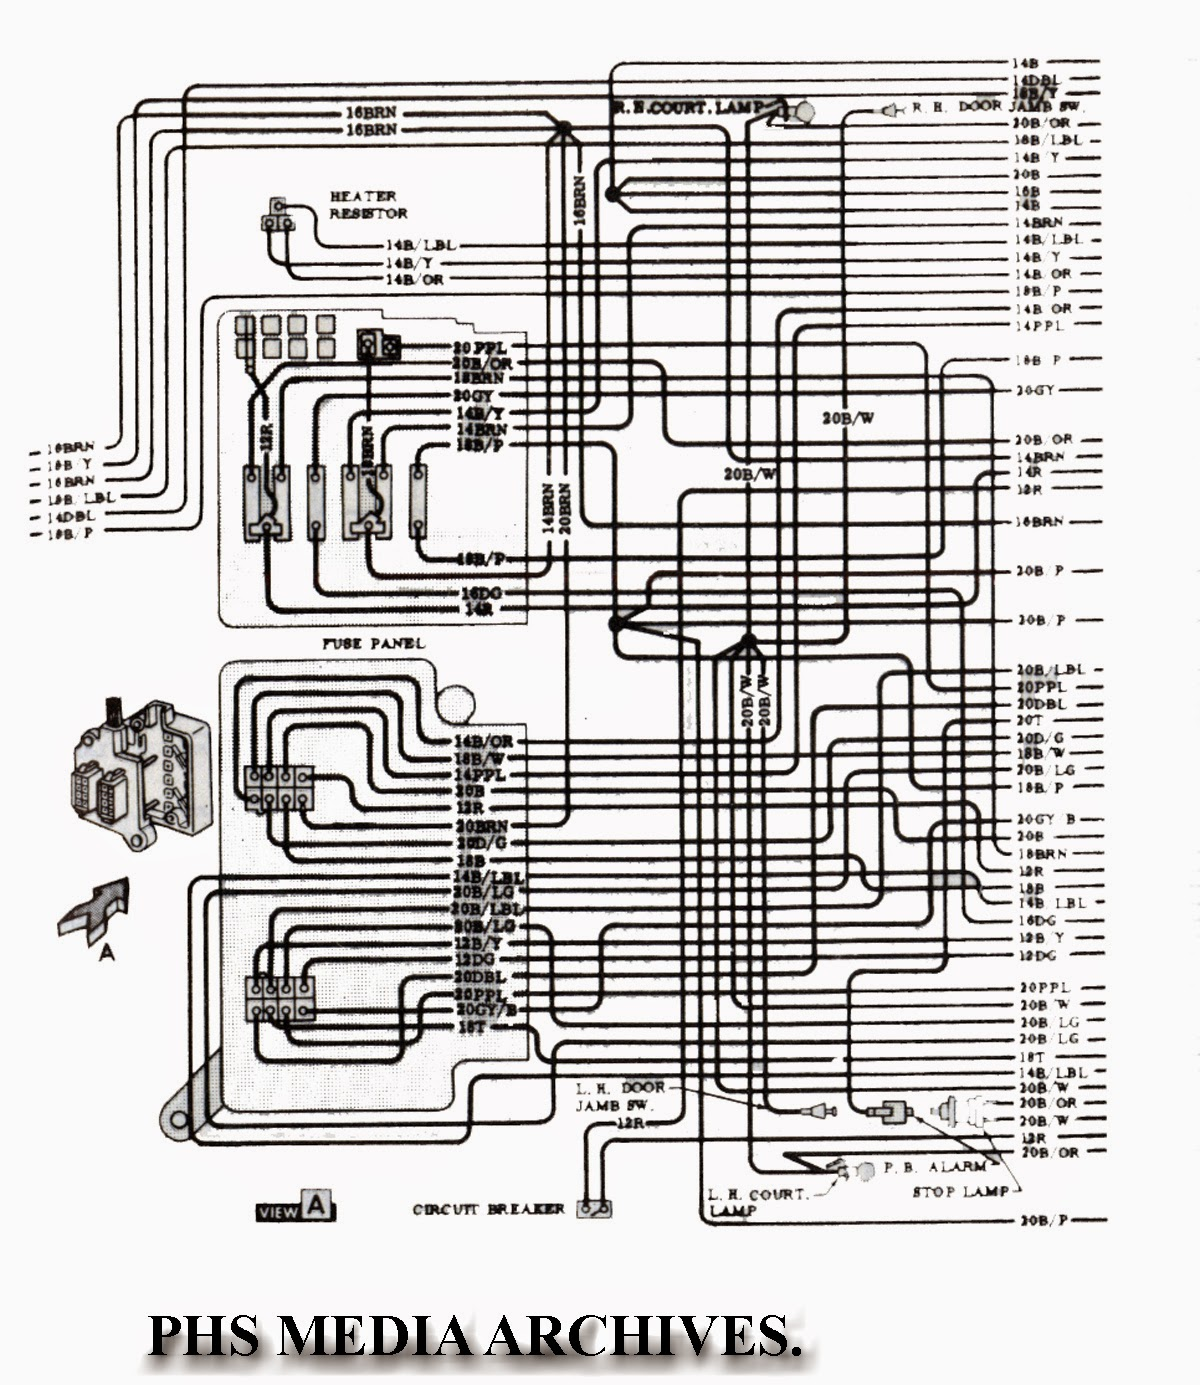 vette%2Bfuse%2Bblock tech series 1965 chevrolet corvette wiring diagrams, engine, fuse 65 Chevy Truck Wiring Diagram at creativeand.co